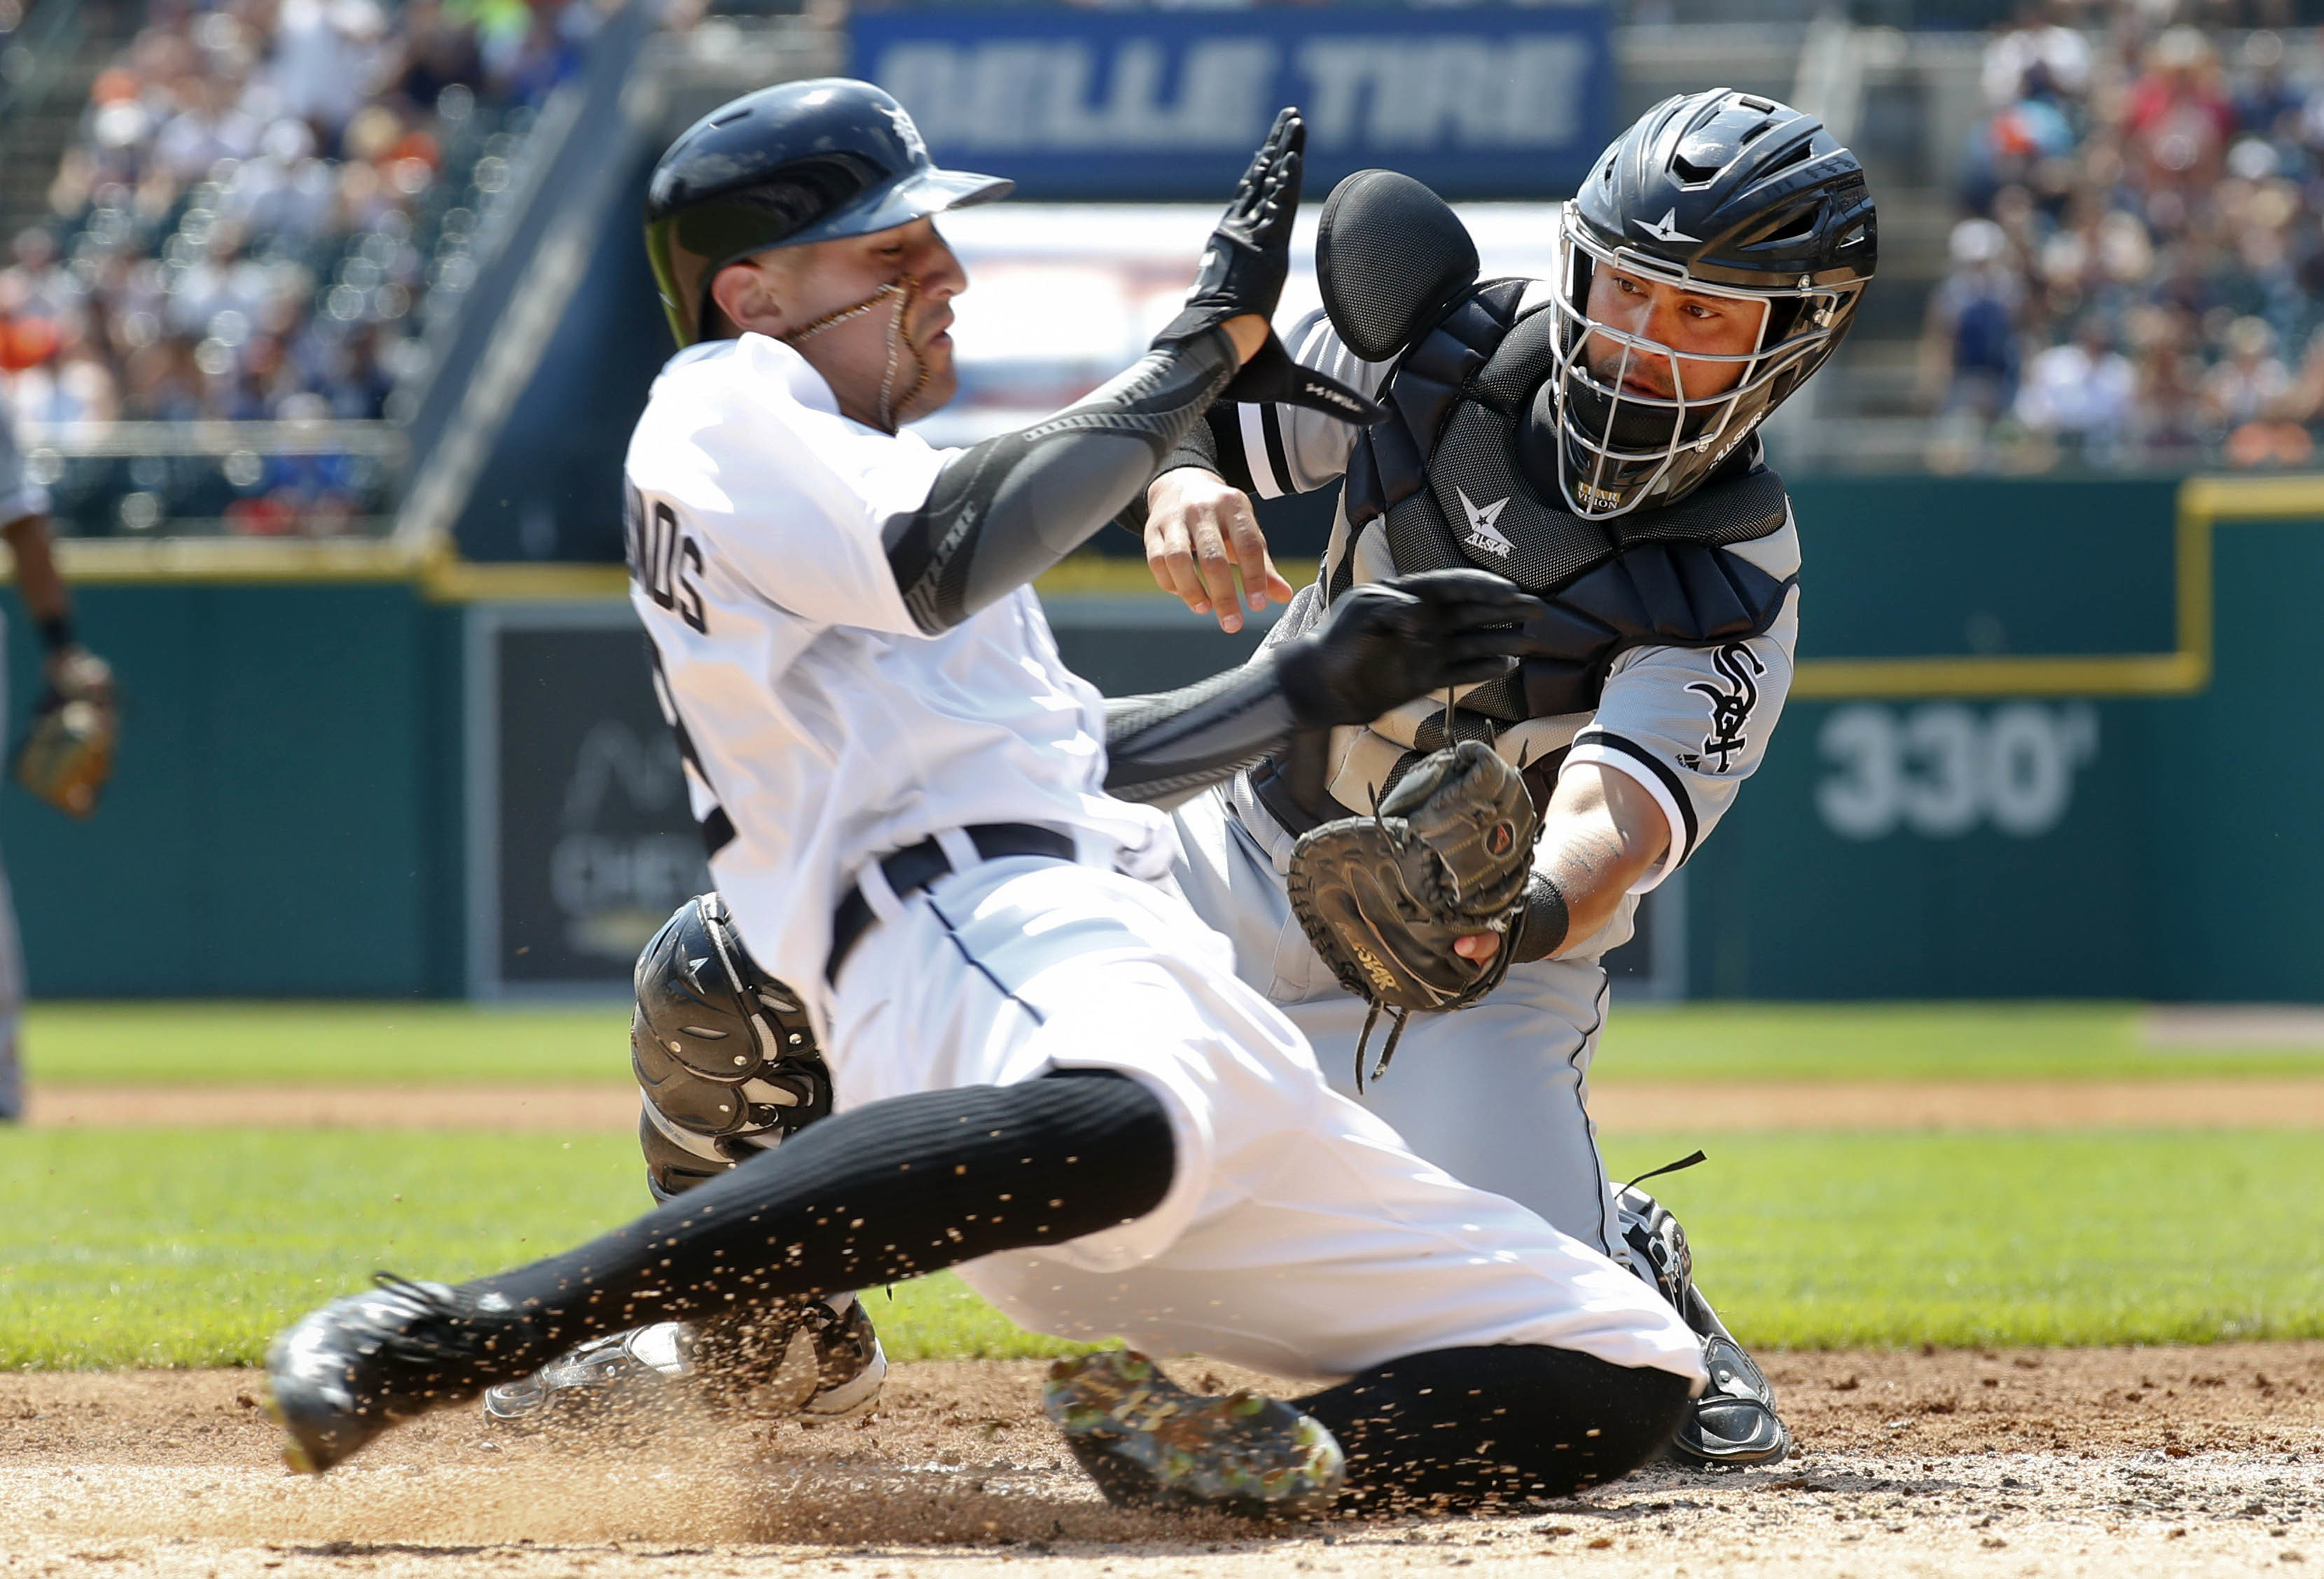 Chicago White Sox catcher Omar Narvaez tags Detroit Tigers' Nick Castellanos (9) out at home plate in the first inning of a baseball game Thursday, Aug. 4, 2016 in Detroit. (AP Photo/Paul Sancya)